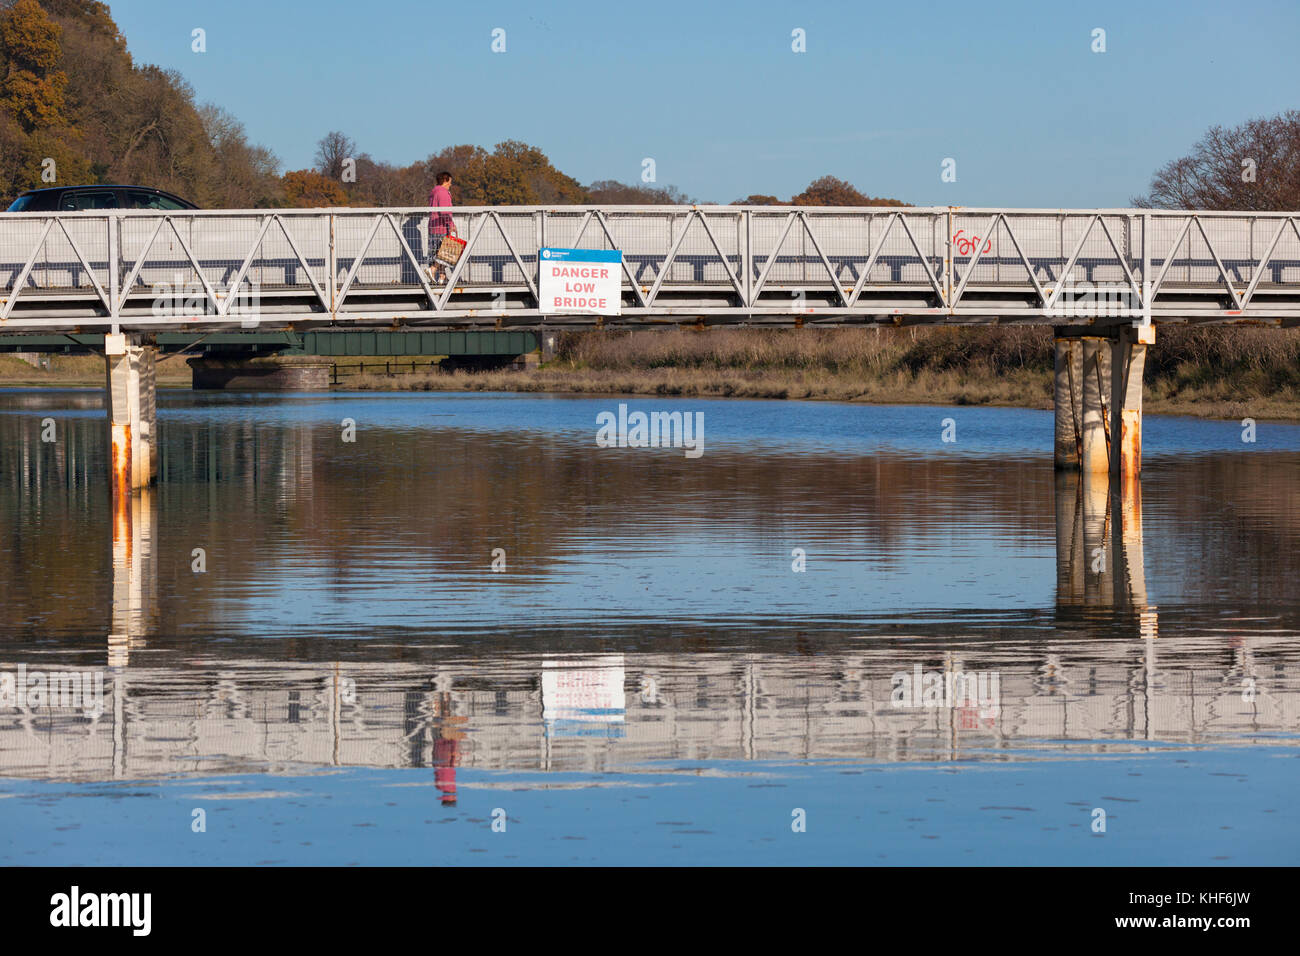 Rye, East Sussex, UK. 17th November, 2017. UK Weather. A female walking over a bridge of the River Rother. Photo - Stock Image